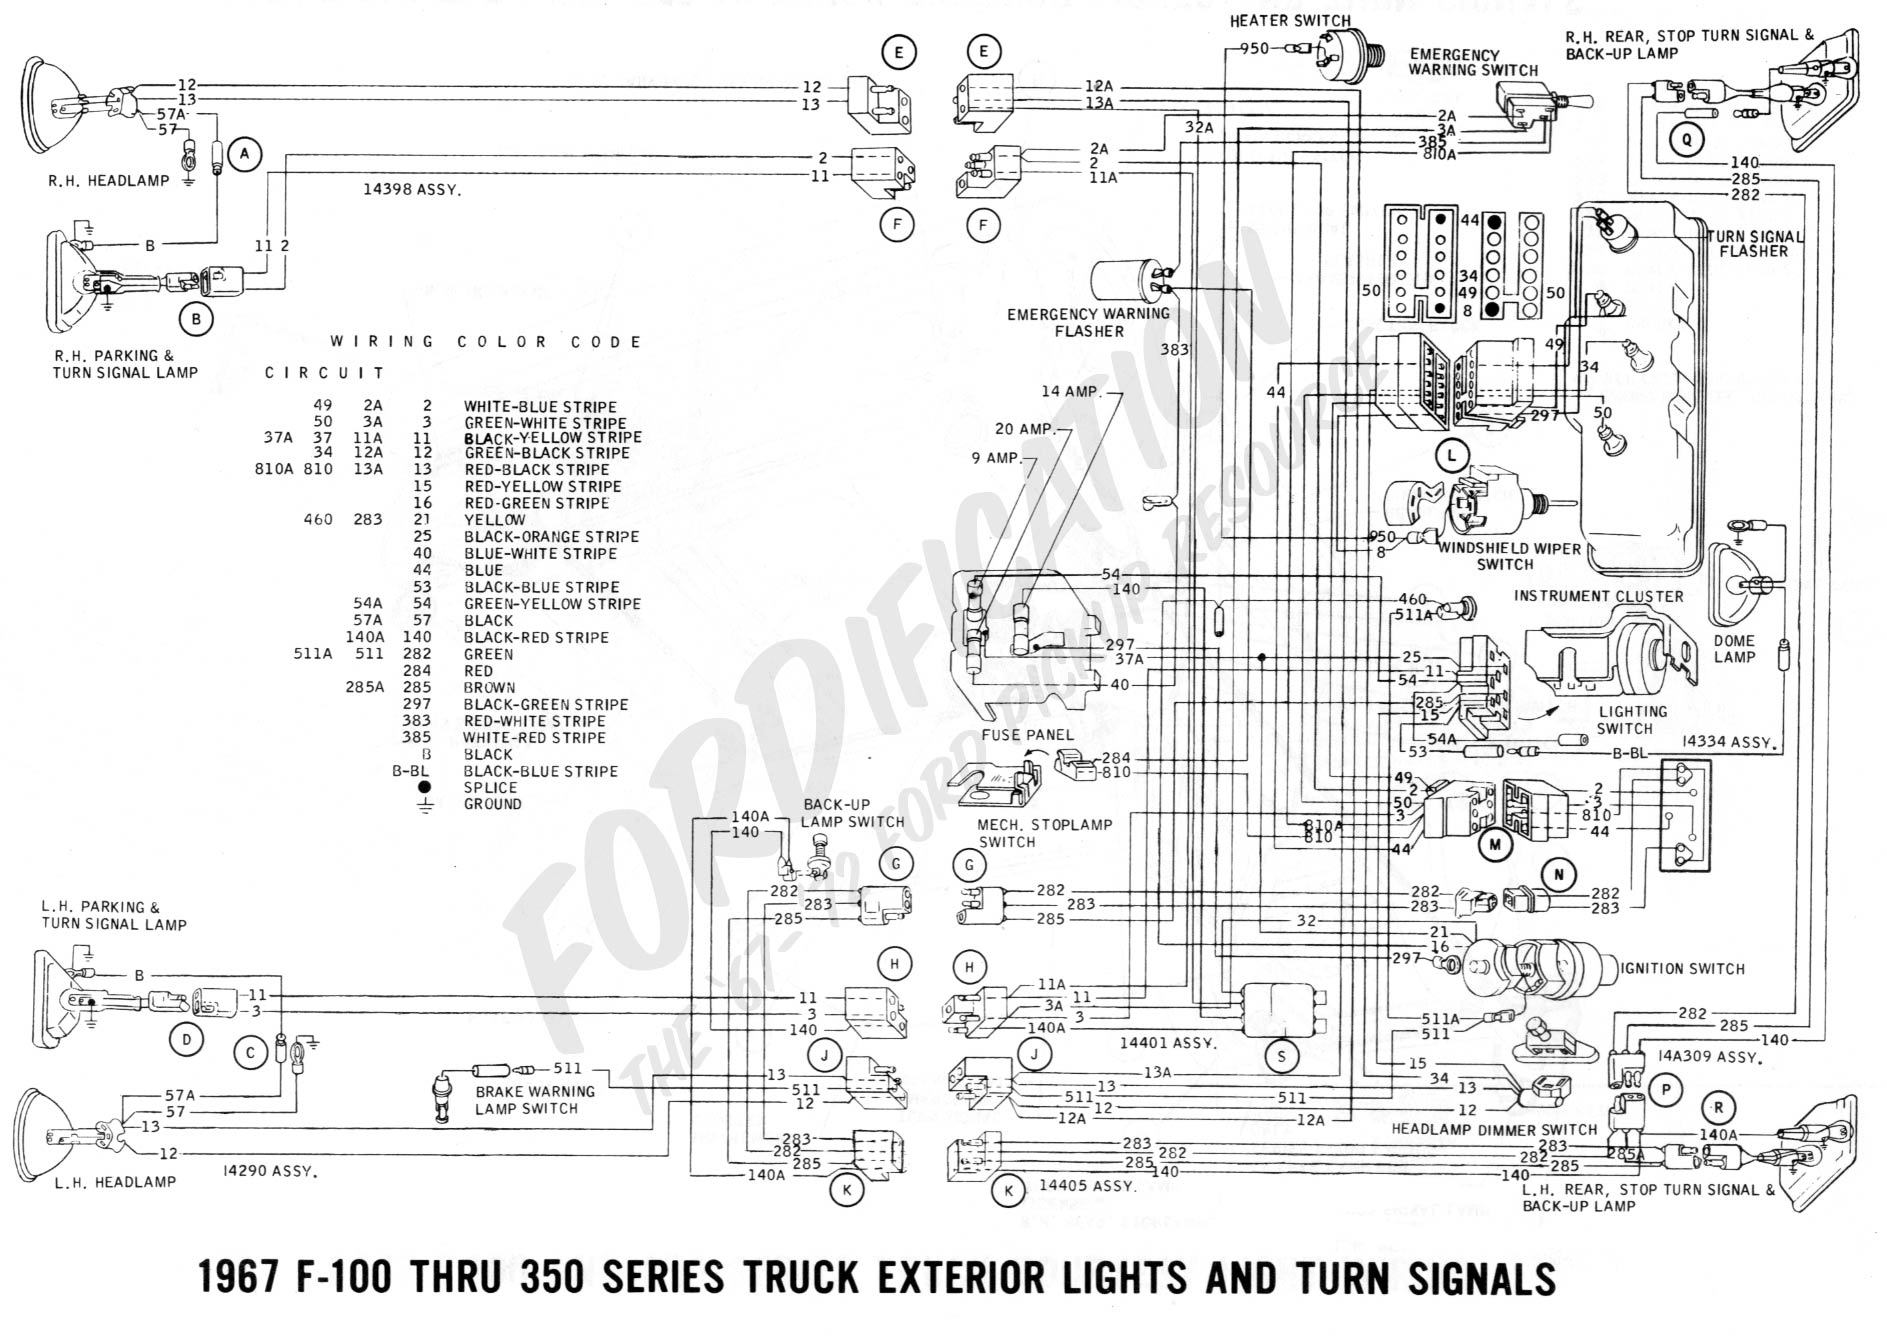 hight resolution of 1967 ford f750 wiring wiring diagram load 1976 ford f700 wiring diagram 1976 f250 wiring diagram